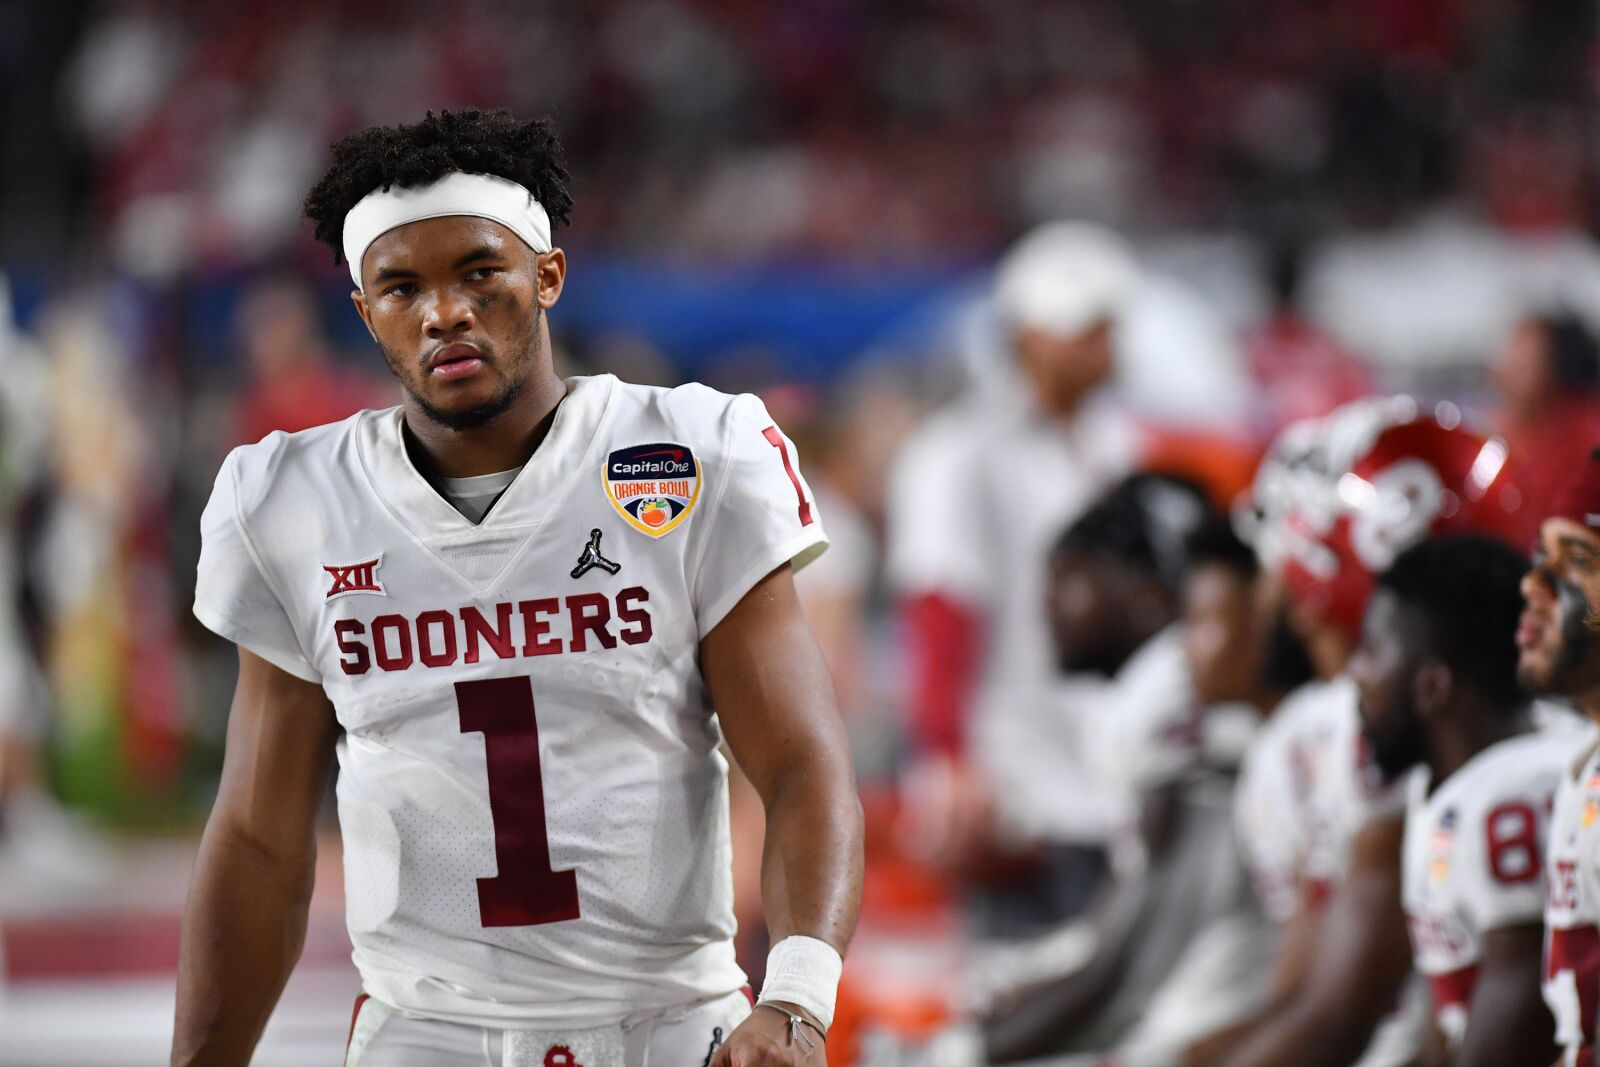 It sure seems like Kyler Murray wants to play baseball